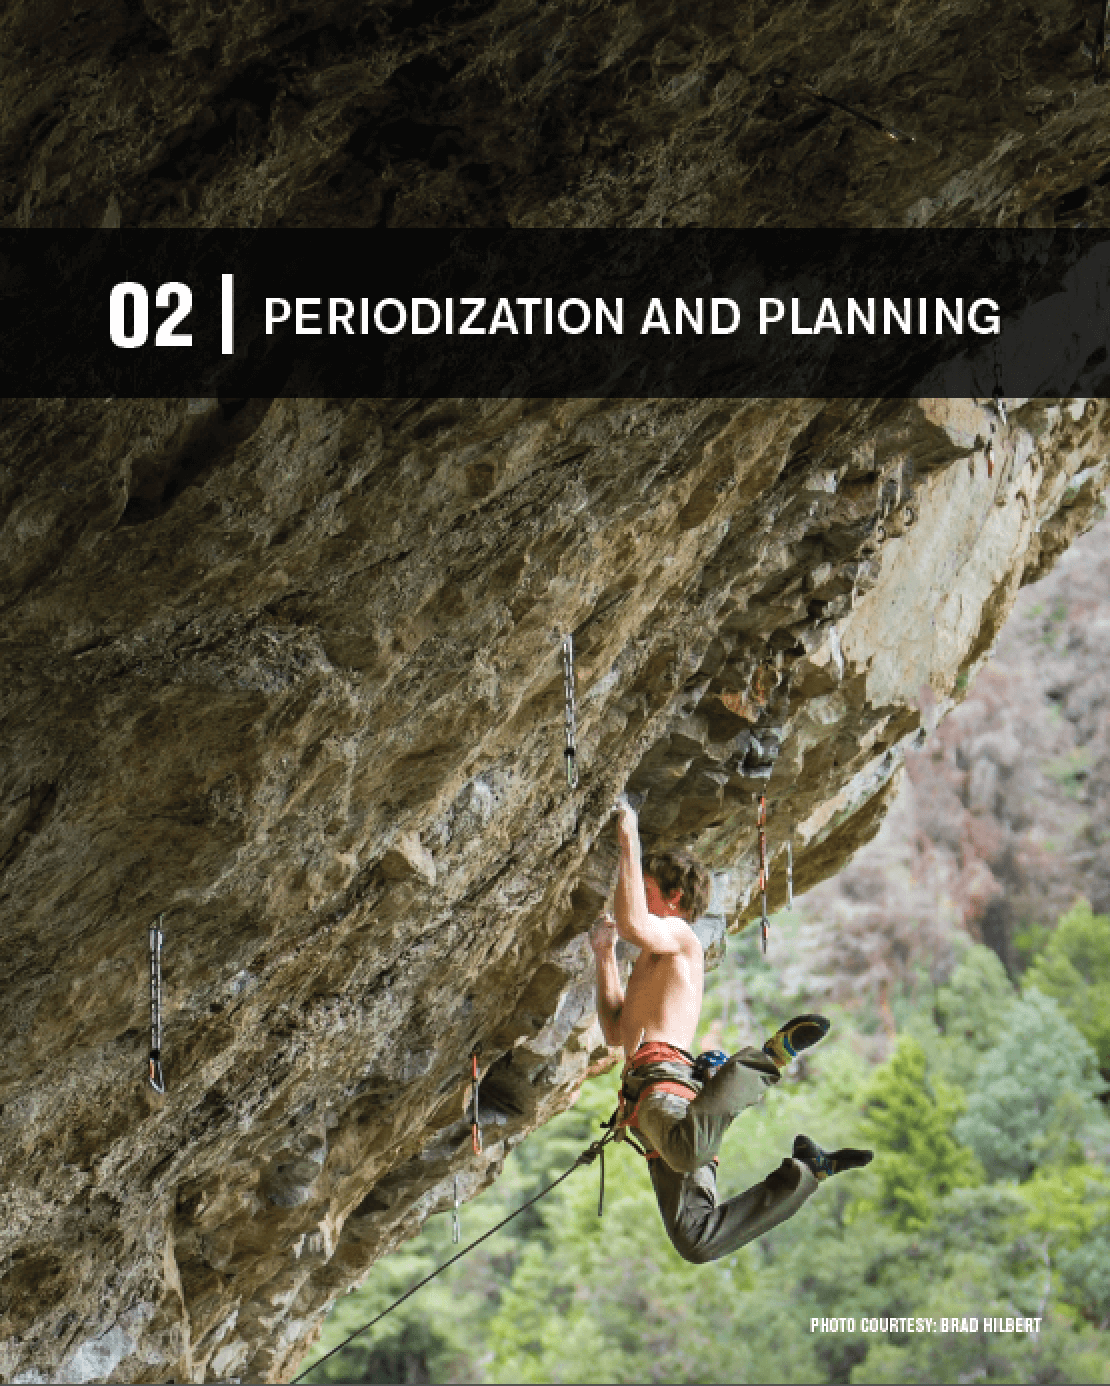 periodization and planning